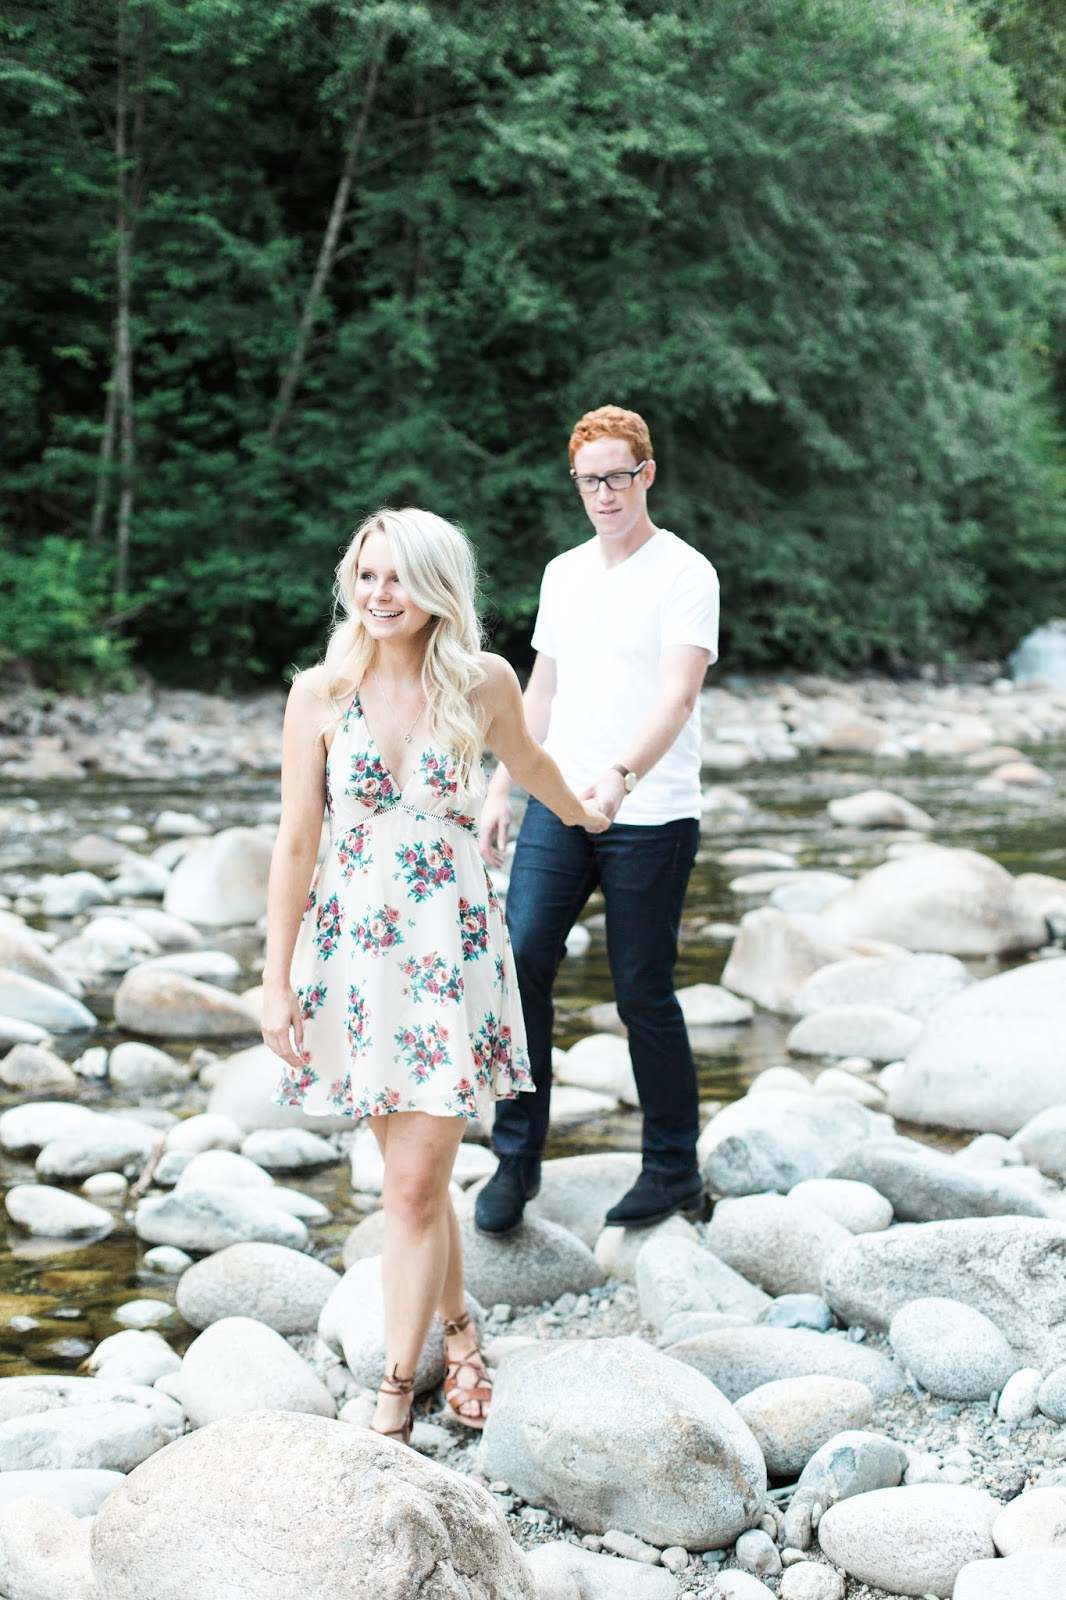 a blonde women with loose curly hair leads her fiancé through a creek in the summer, posing for engagement photos